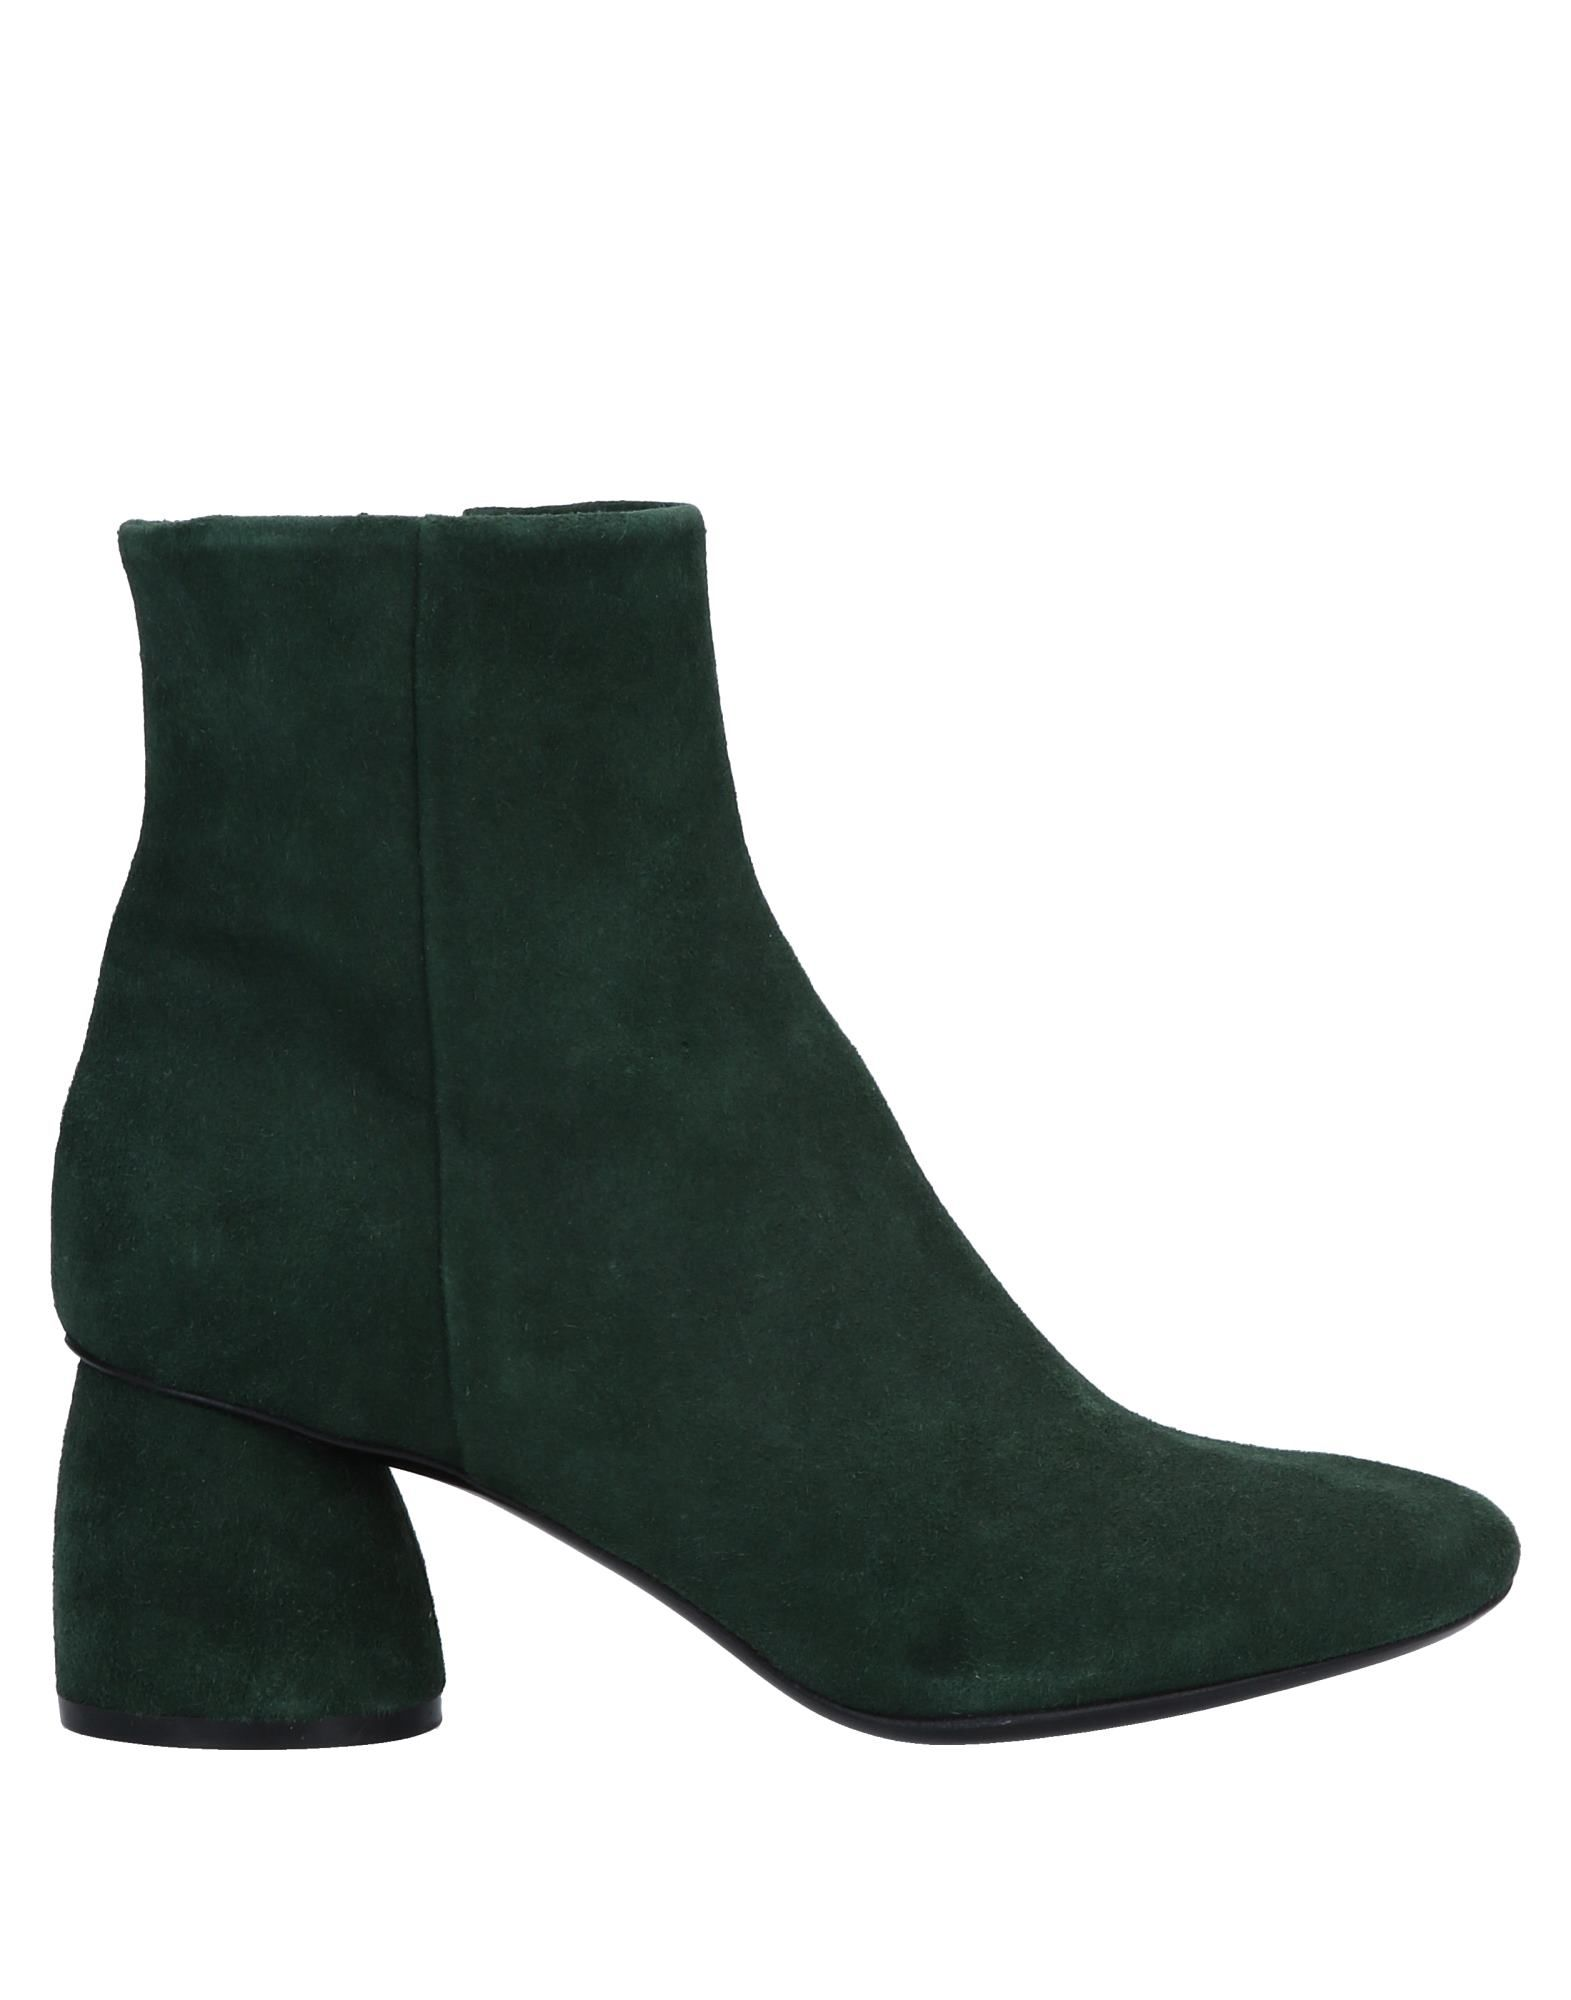 ELENA IACHI Ankle Boots in Dark Green